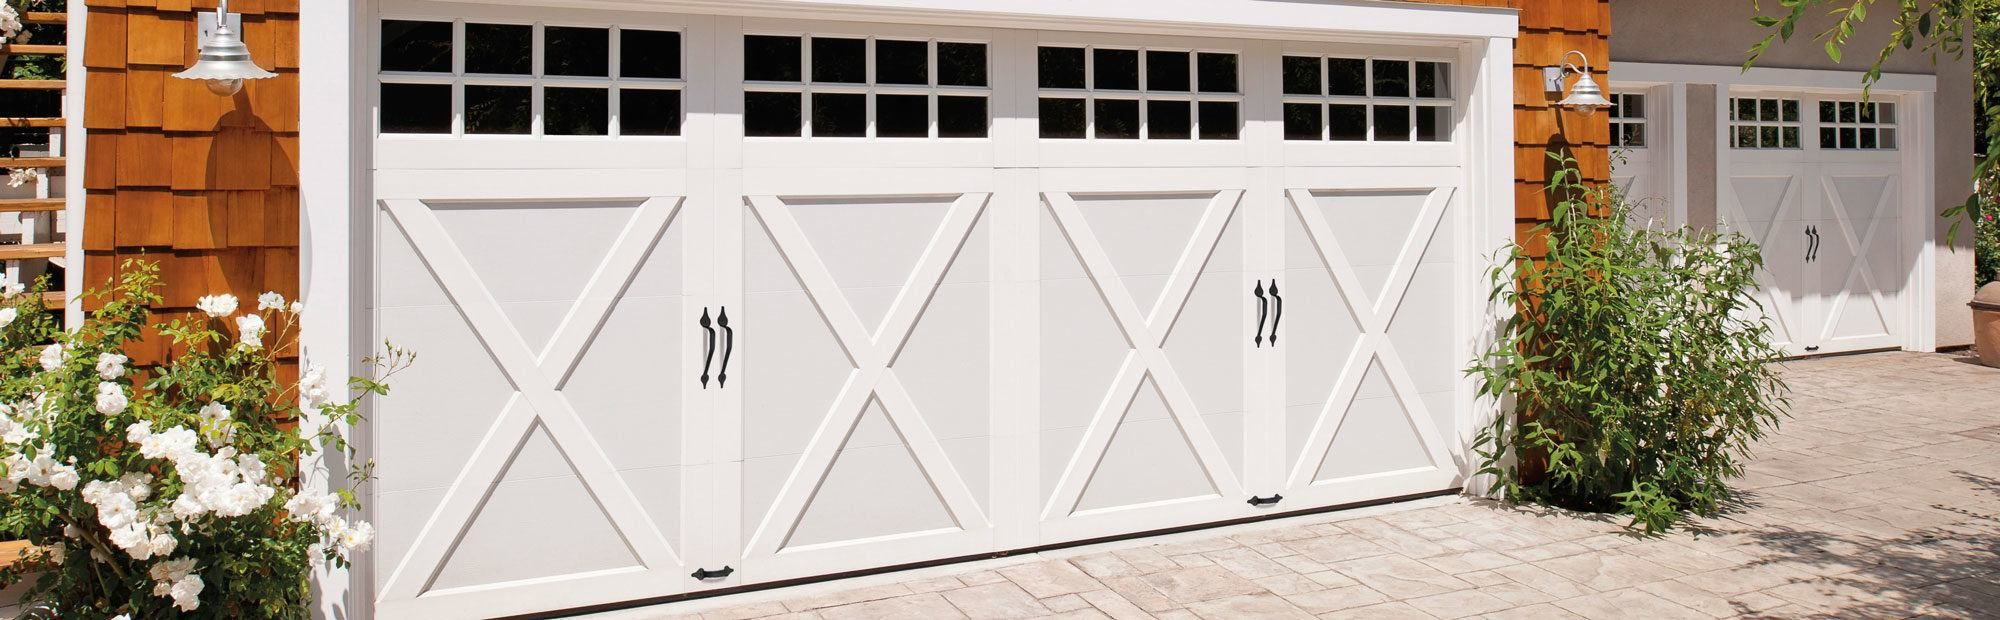 Garage Door Installation in Connecticut | American Overhead Doors